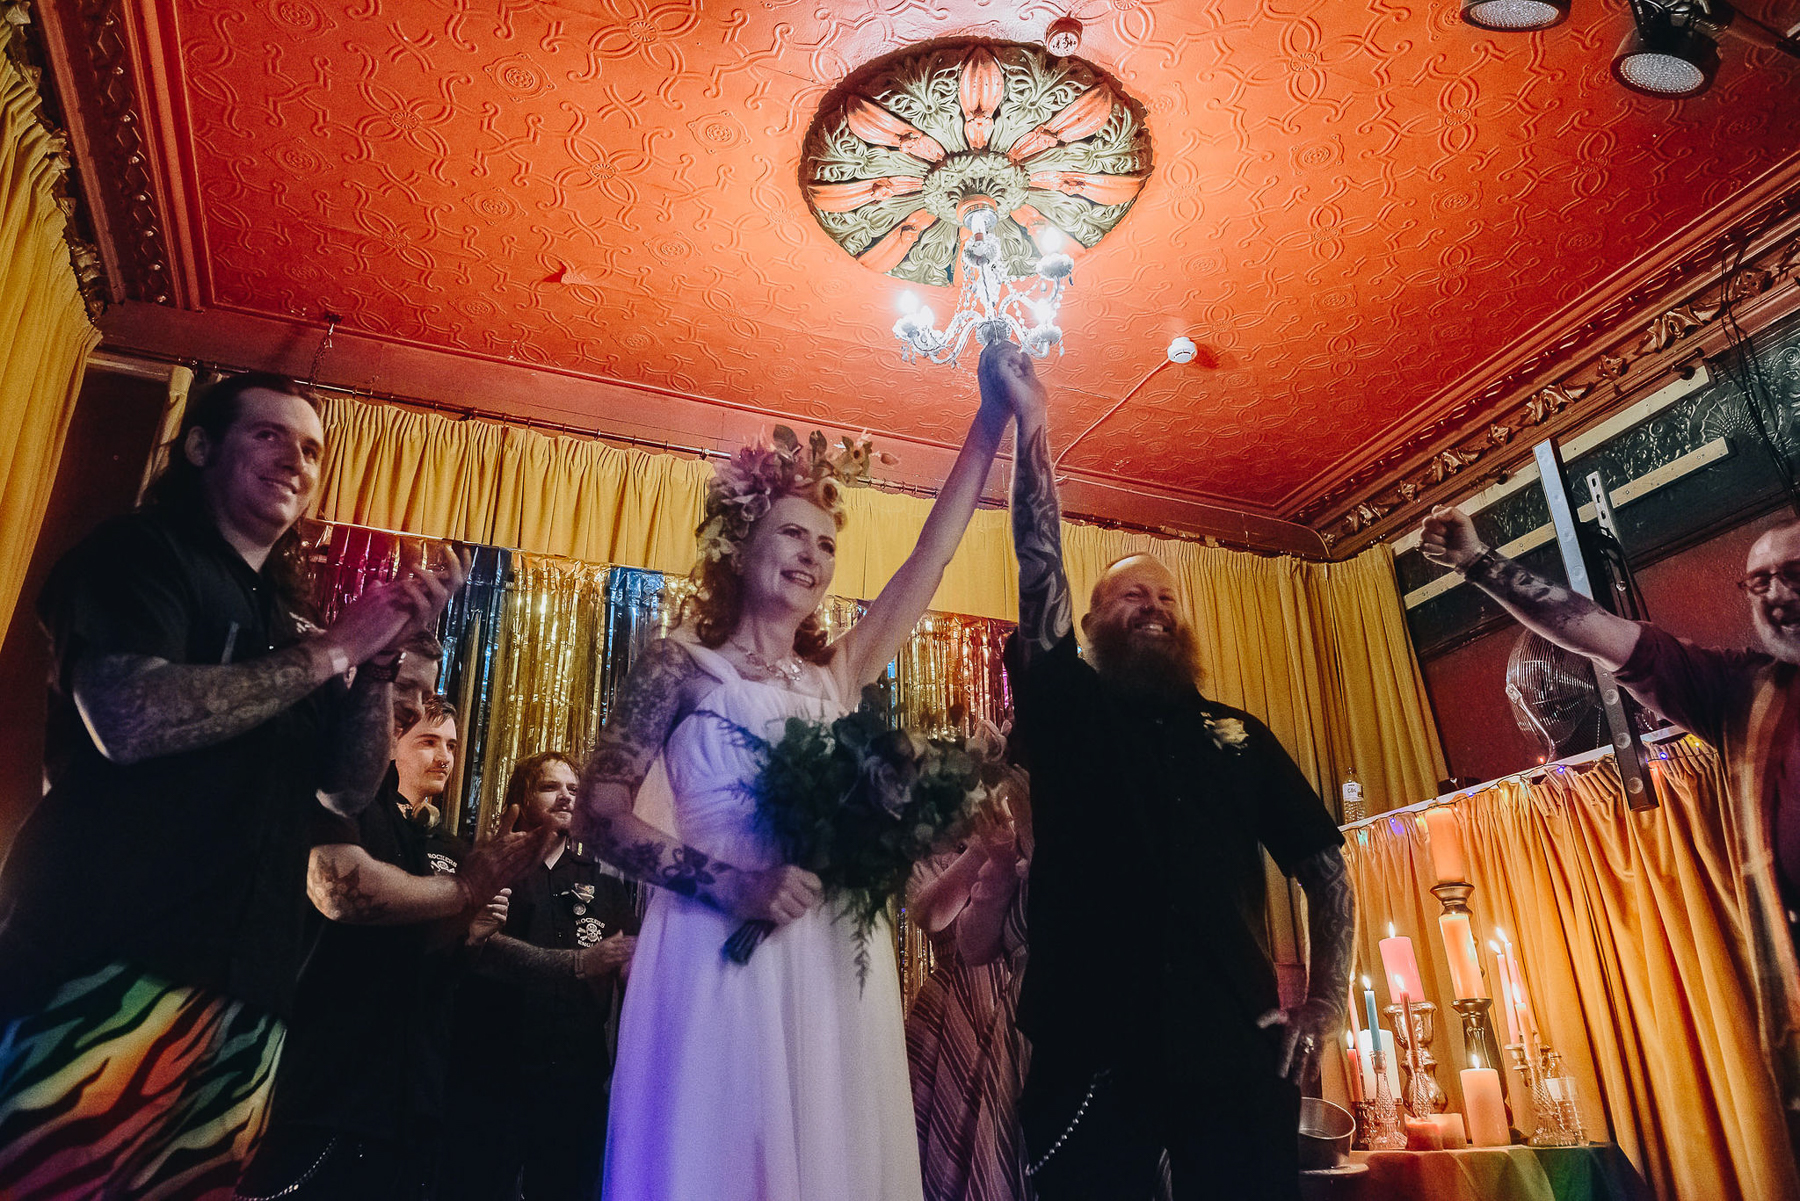 Alternative_Manchester_Northern_Quarter_Wedding_Photography_The_Pin-Up_Bride-33.jpg